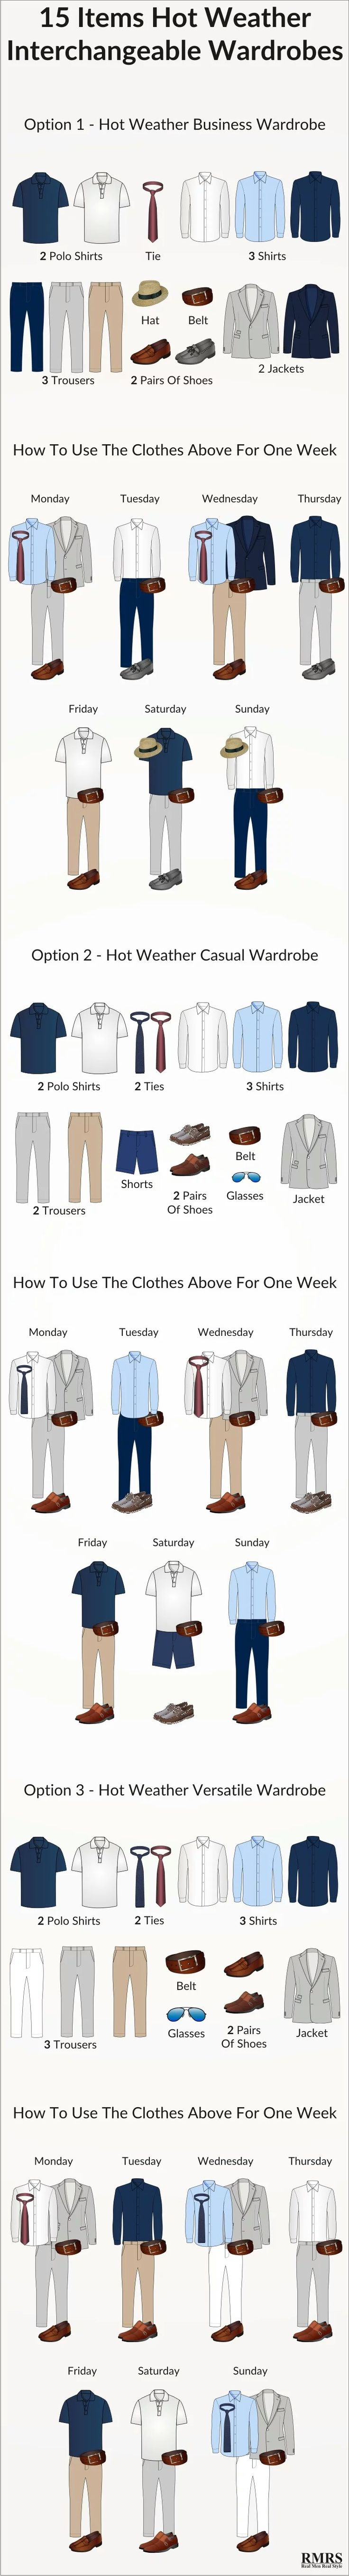 15 hot weather interchangeable items and how to use for one week. http://www.99wtf.net/men/mens-fasion/latest-mens-fashion-trends-2016/